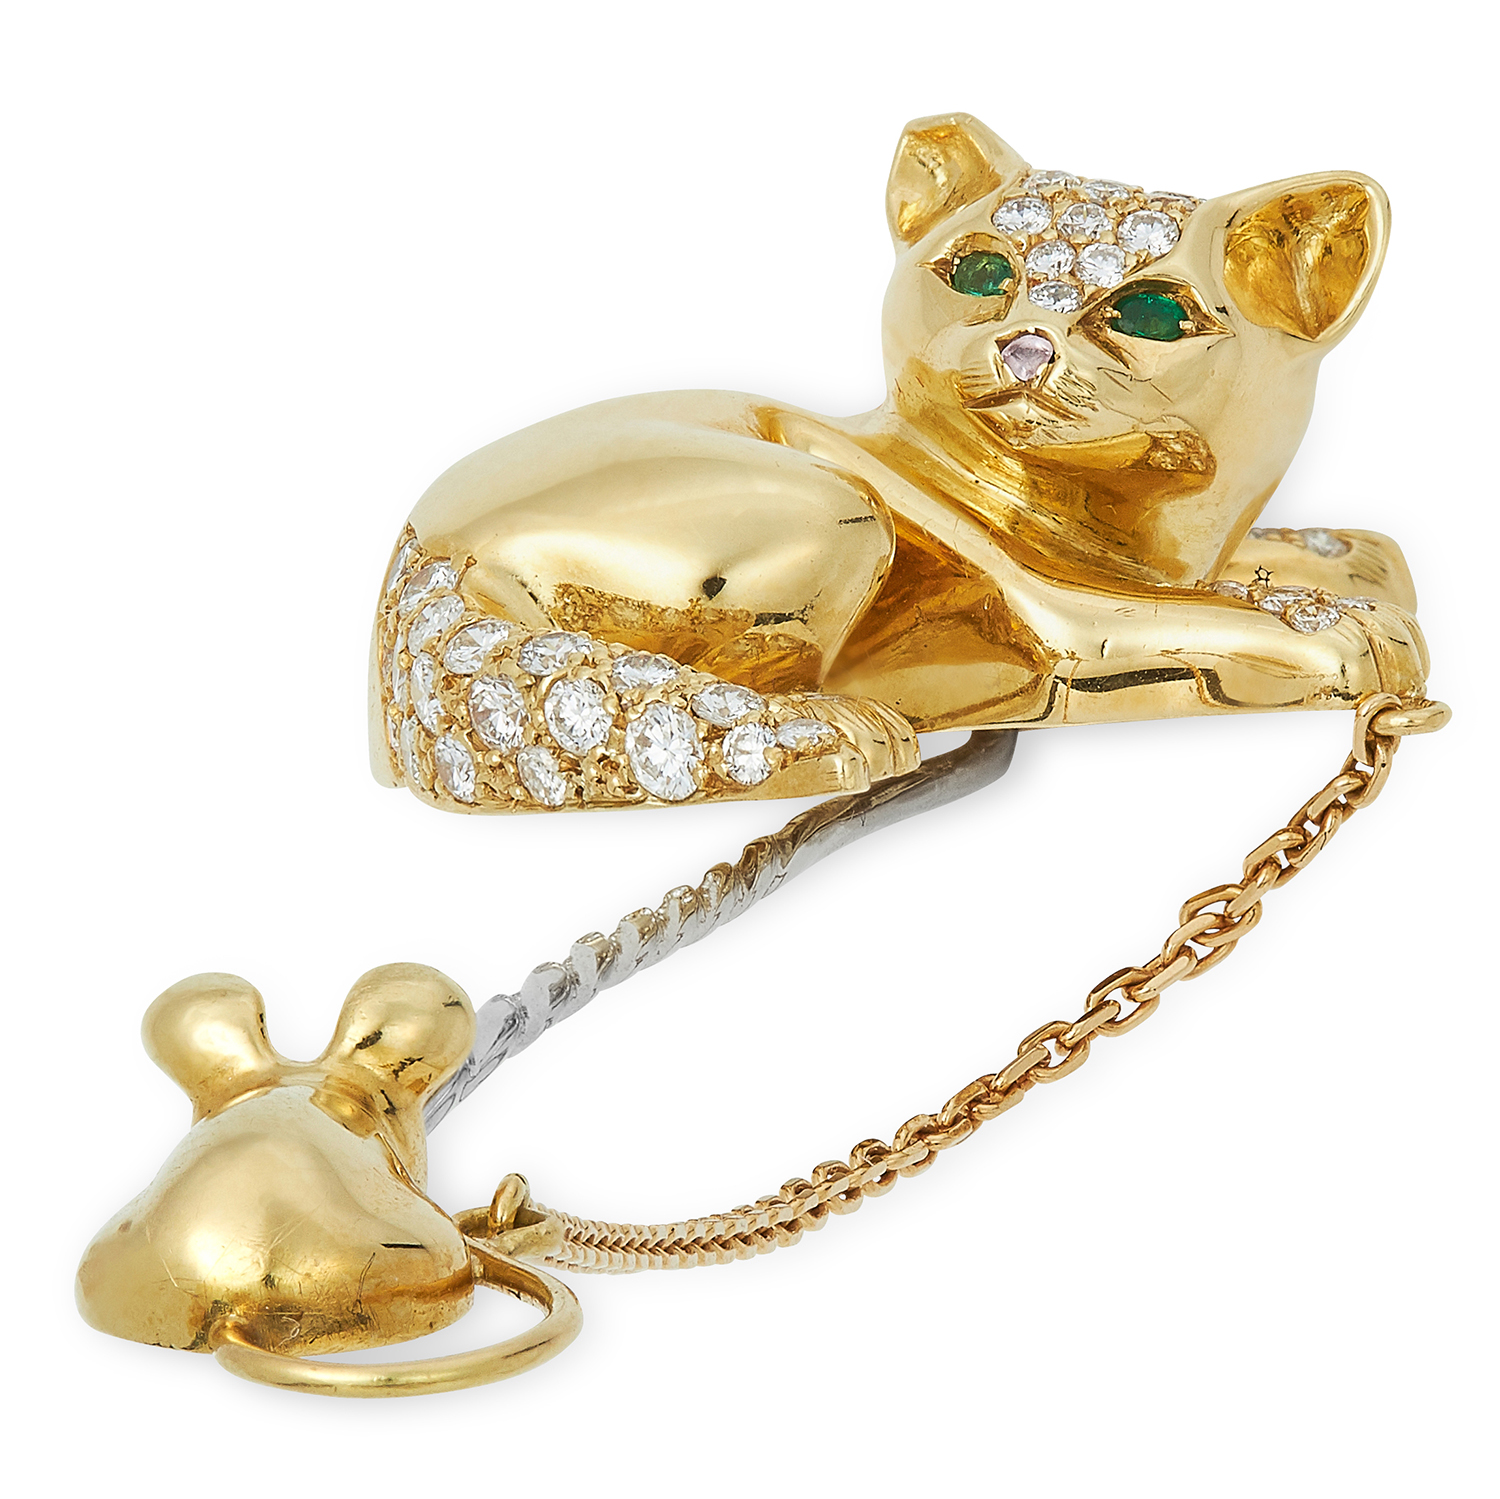 Los 17 - A DIAMOND AND EMERALD CAT AND MOUSE PIN, DAVID MORRIS set with round cut diamonds totalling